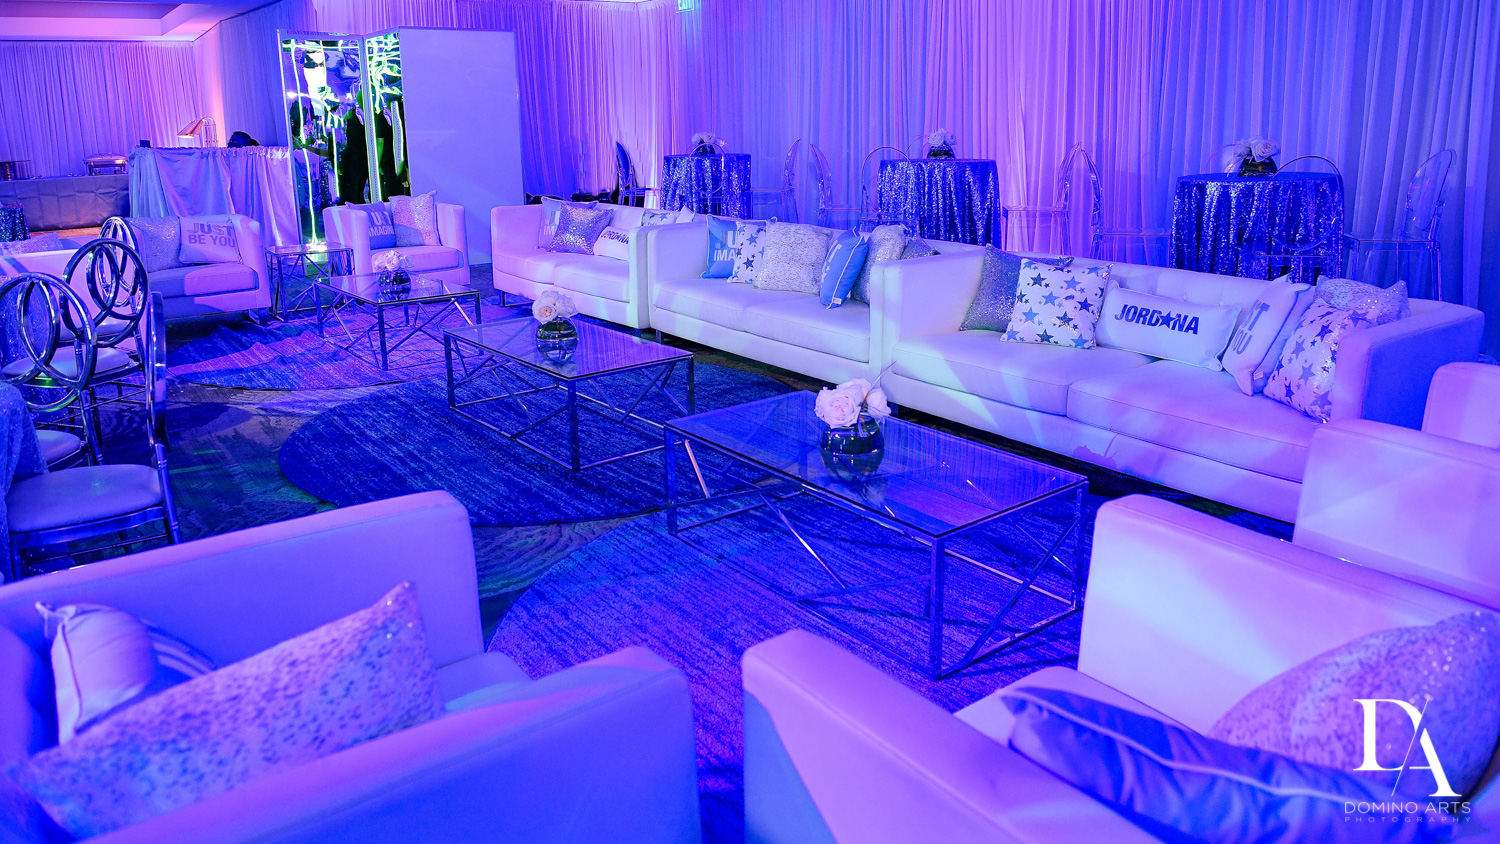 Purple and blue at Trendy Decor Bat Mitzvah at St Andrews Country Club by Domino Arts Photography